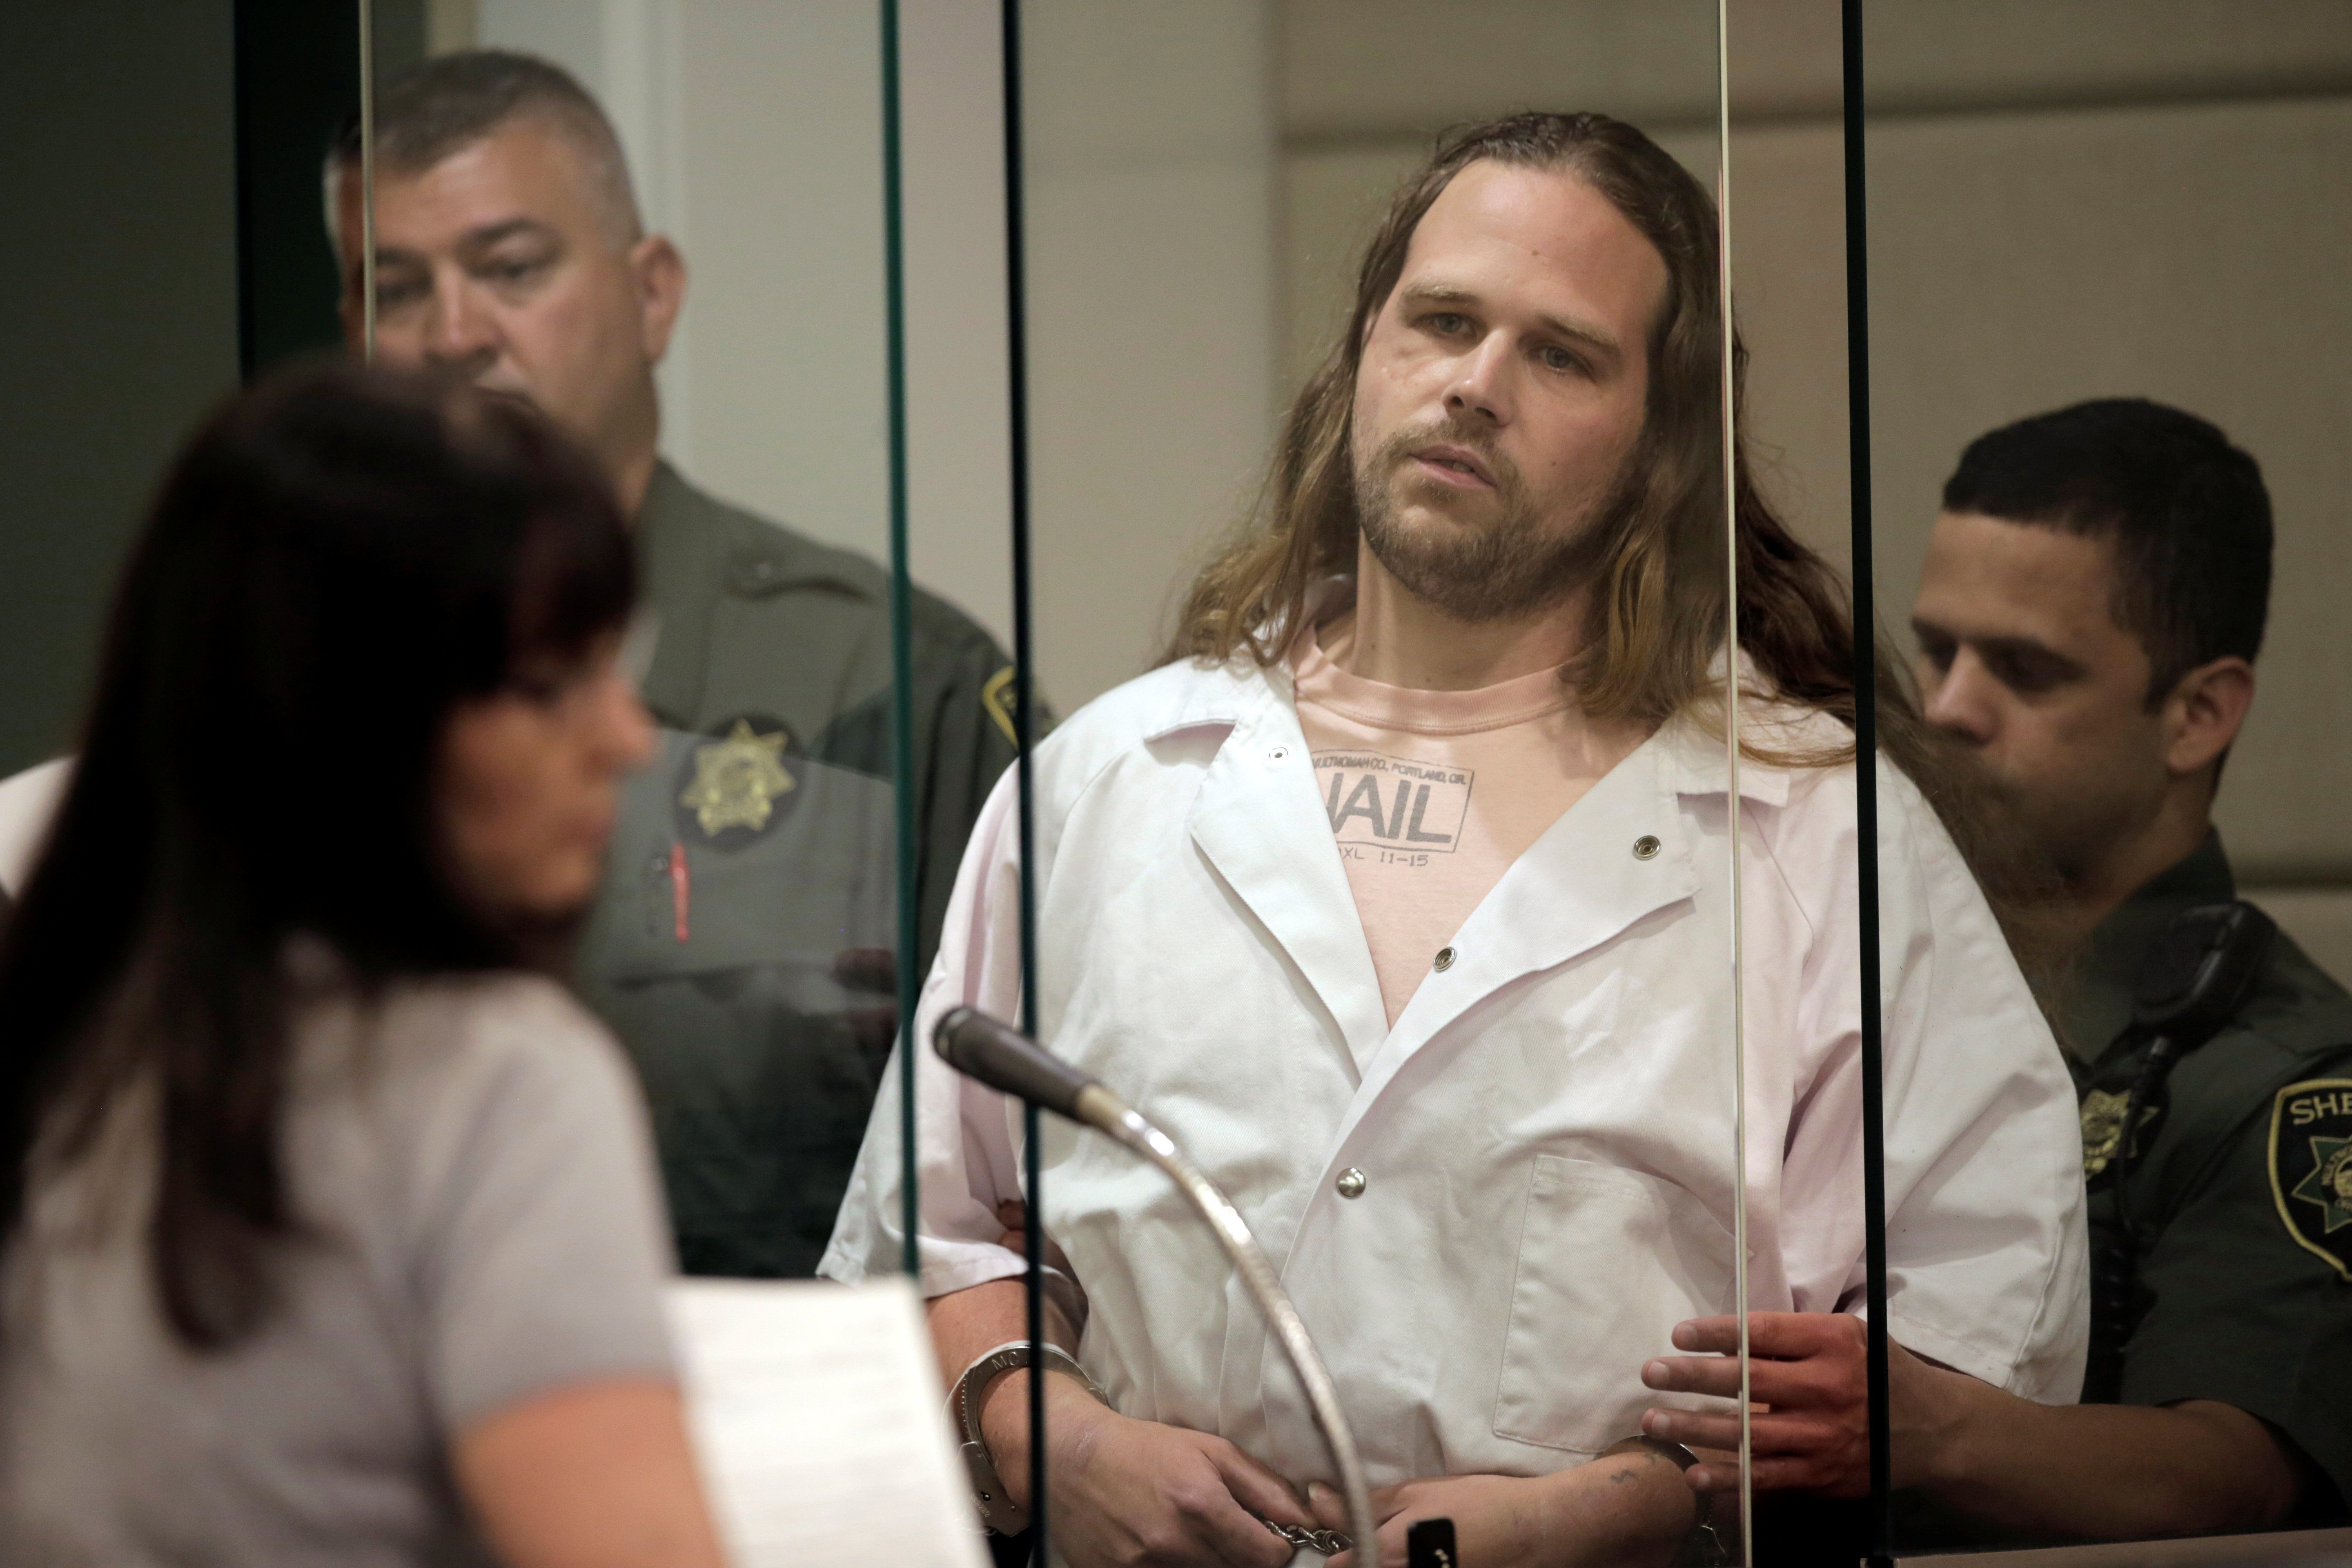 Jeremy Christian, arrested in the fatal stabbing of two men and wounding of another aboard a MAX train, is arraigned on a 15-count indictment in Multnomah County Circuit Court in Portland, Oregon, U.S., June 7, 2017.          Stephanie Yao Long/Pool